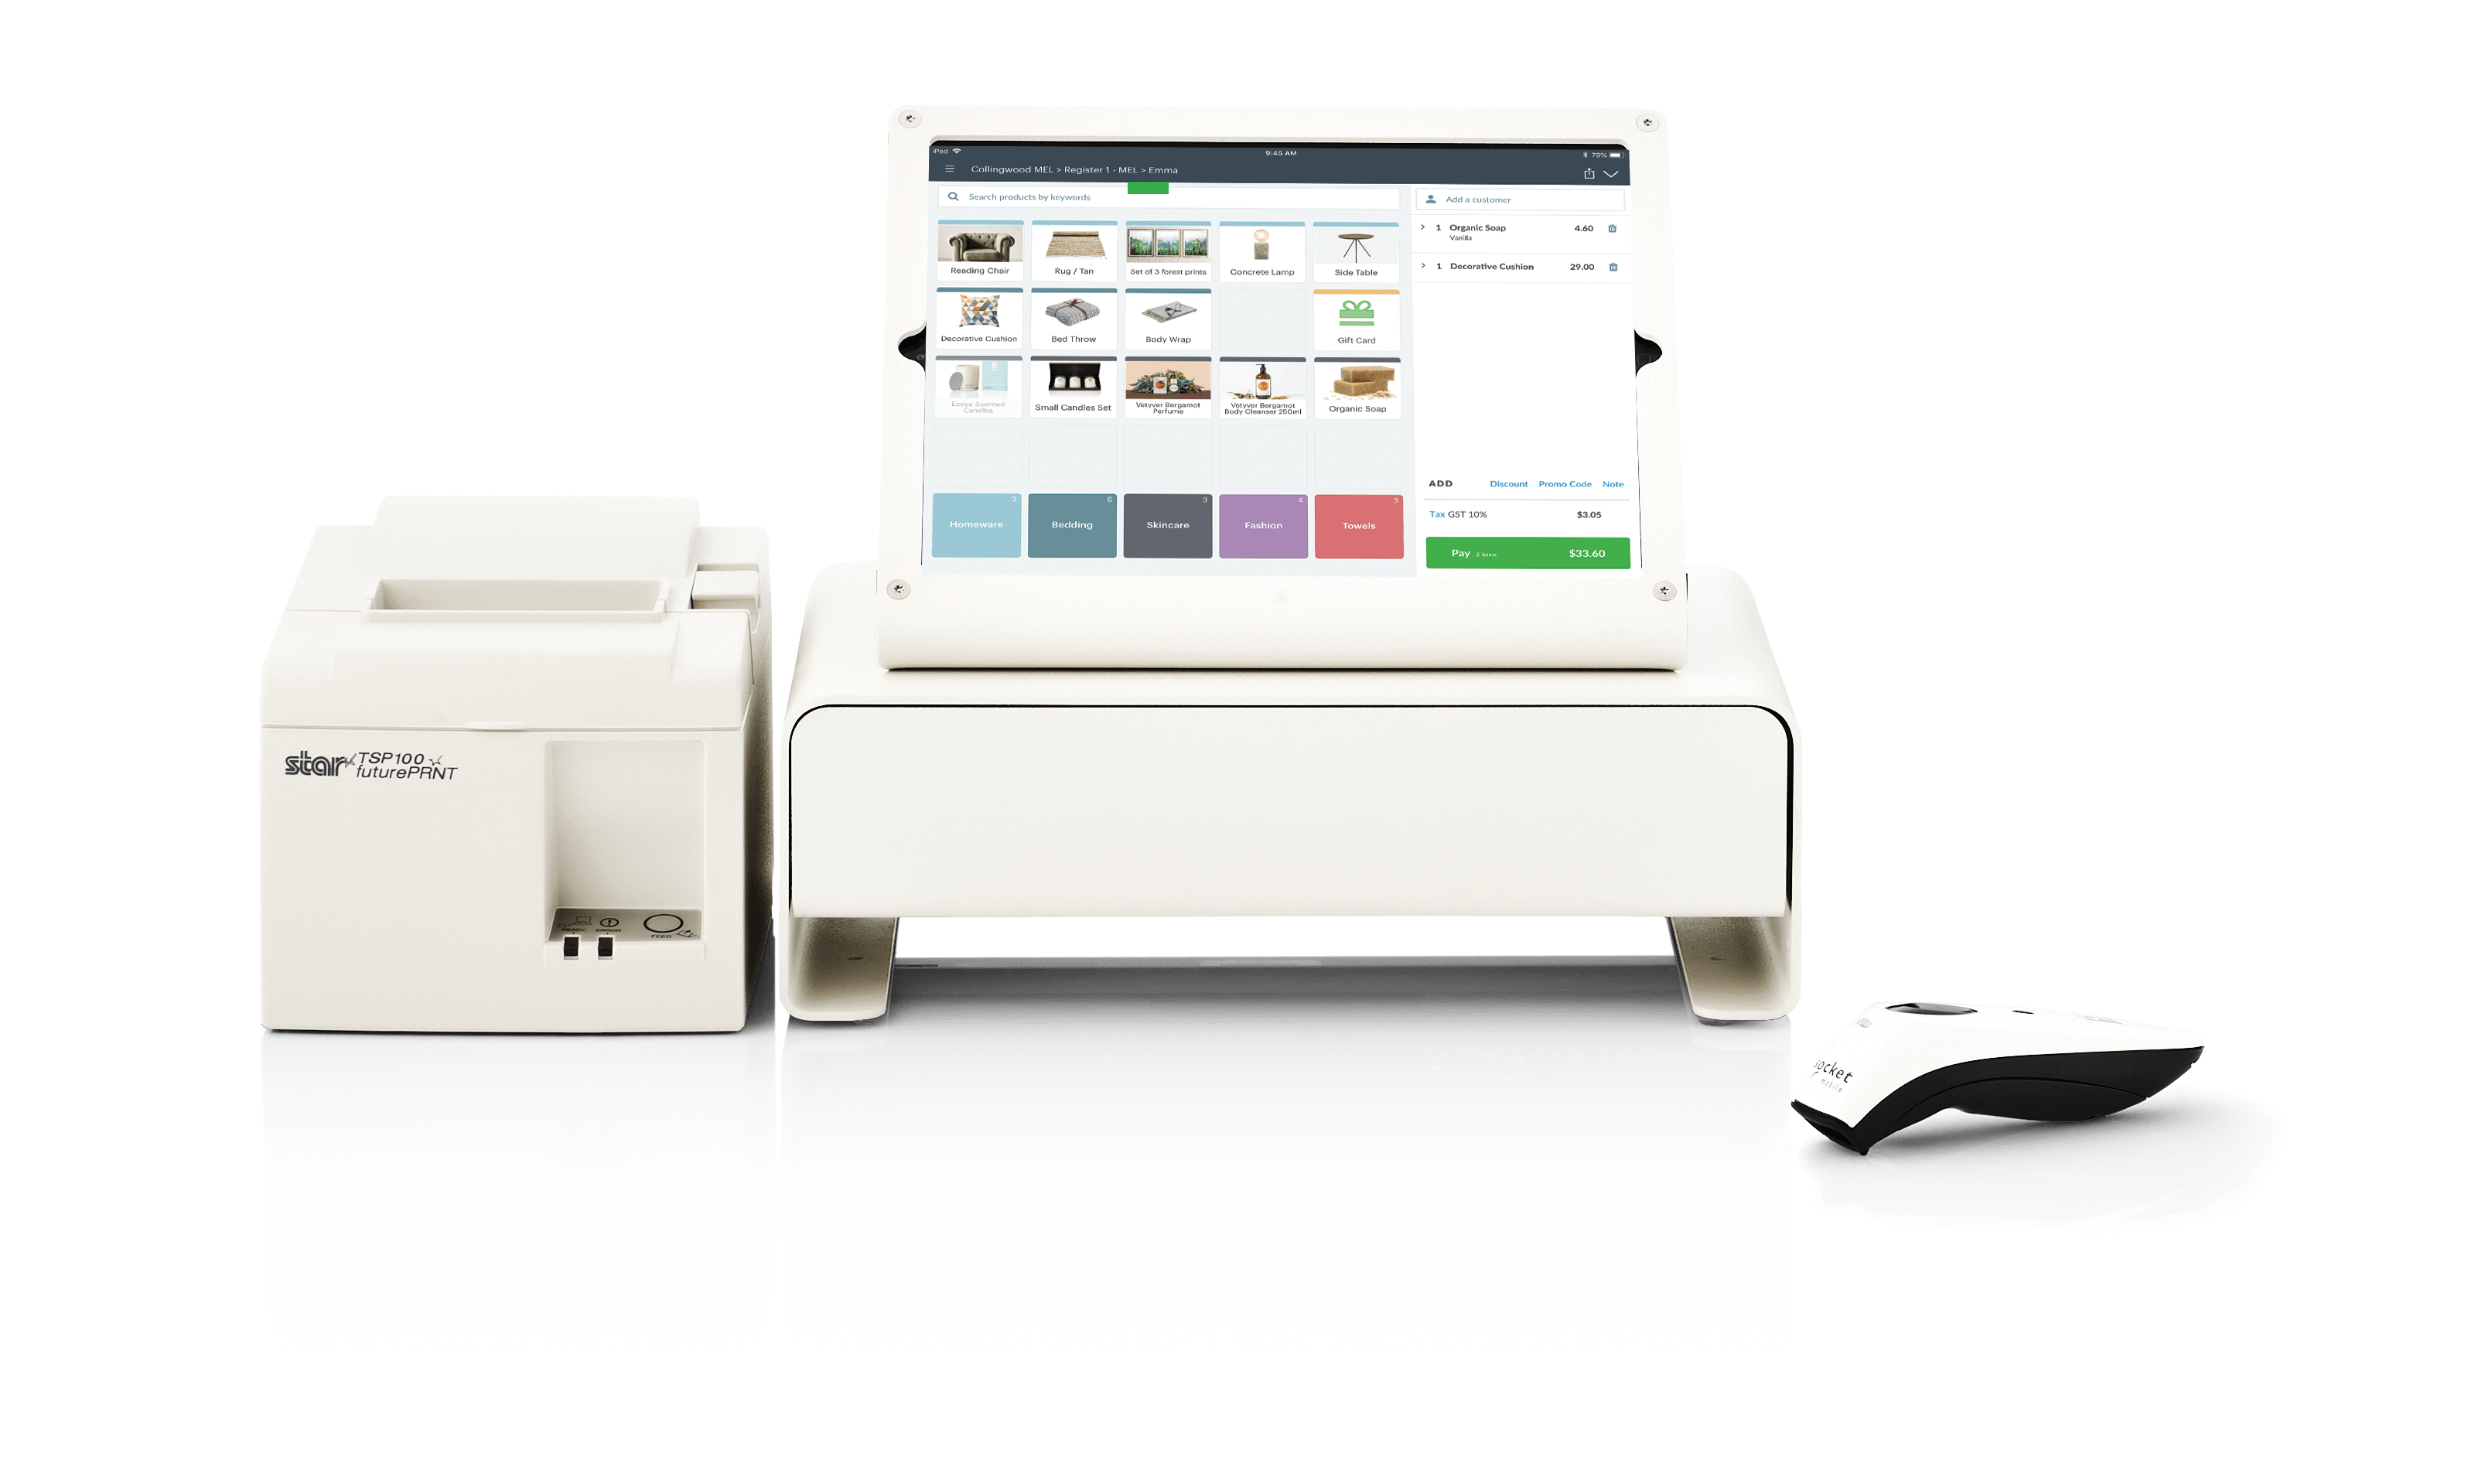 Hardware Combo Printer Scanner